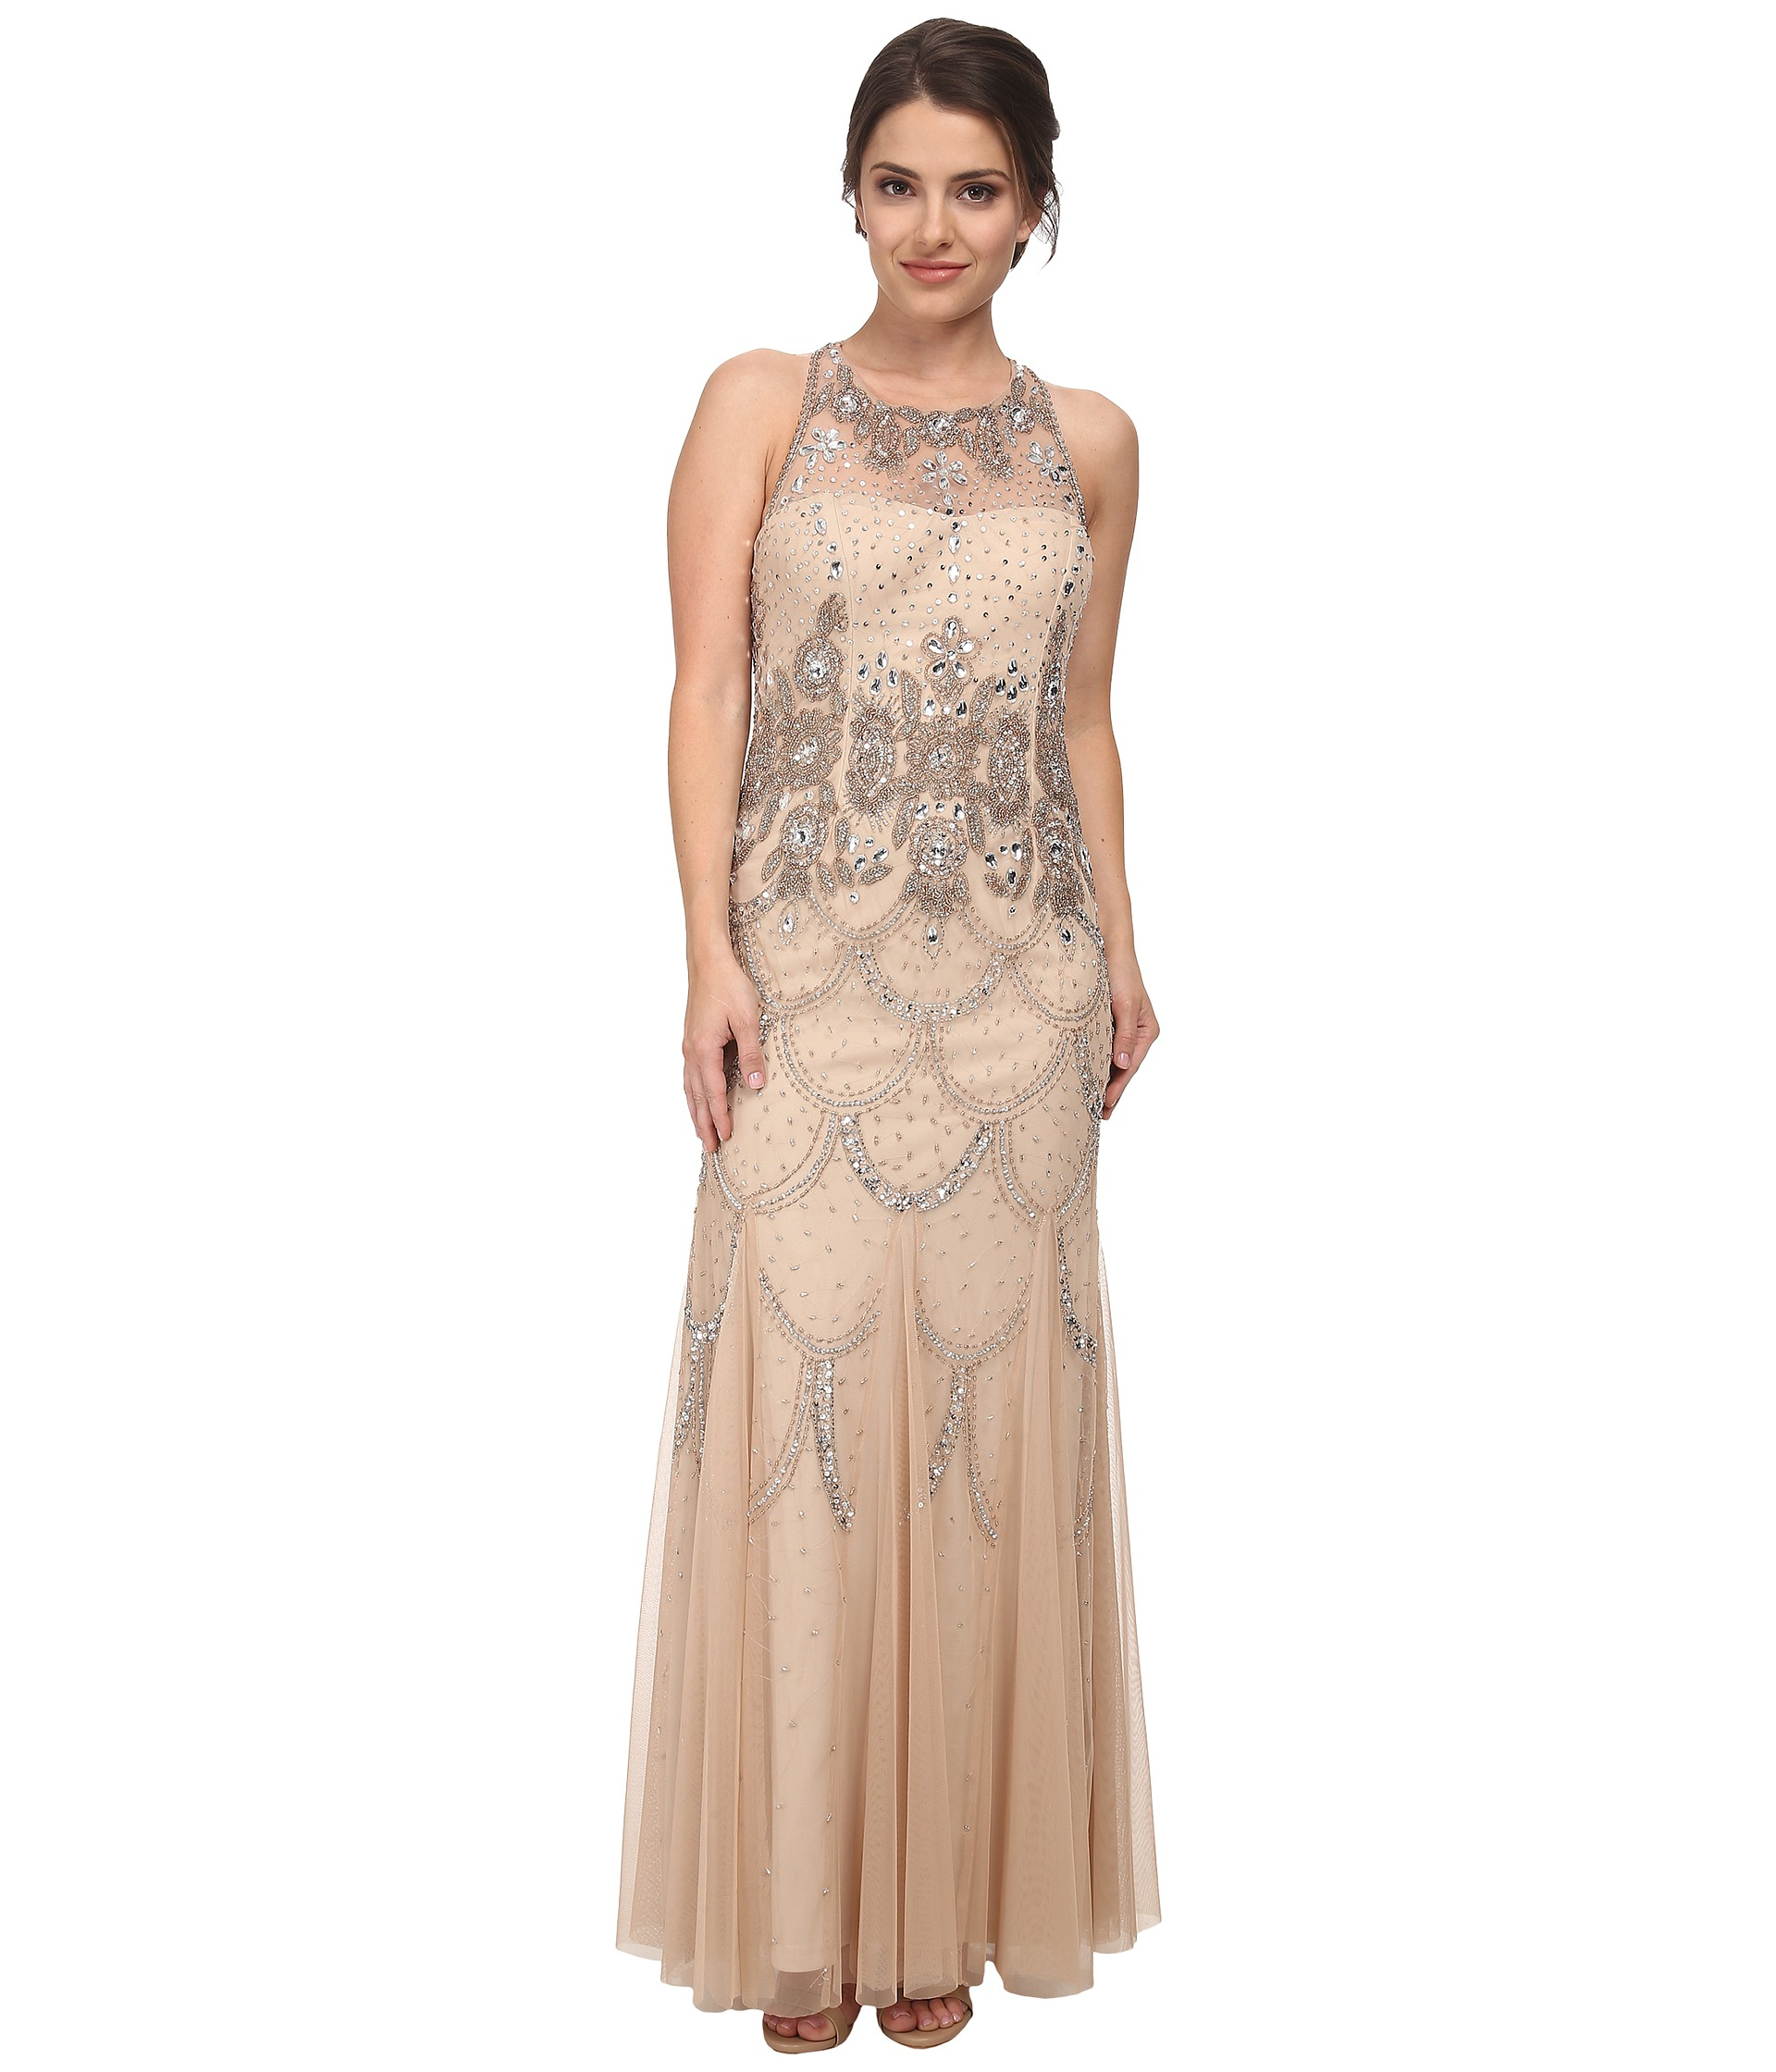 a2b130b658b0 Adrianna Papell Halter Fully Beaded Gown in Metallic - Lyst